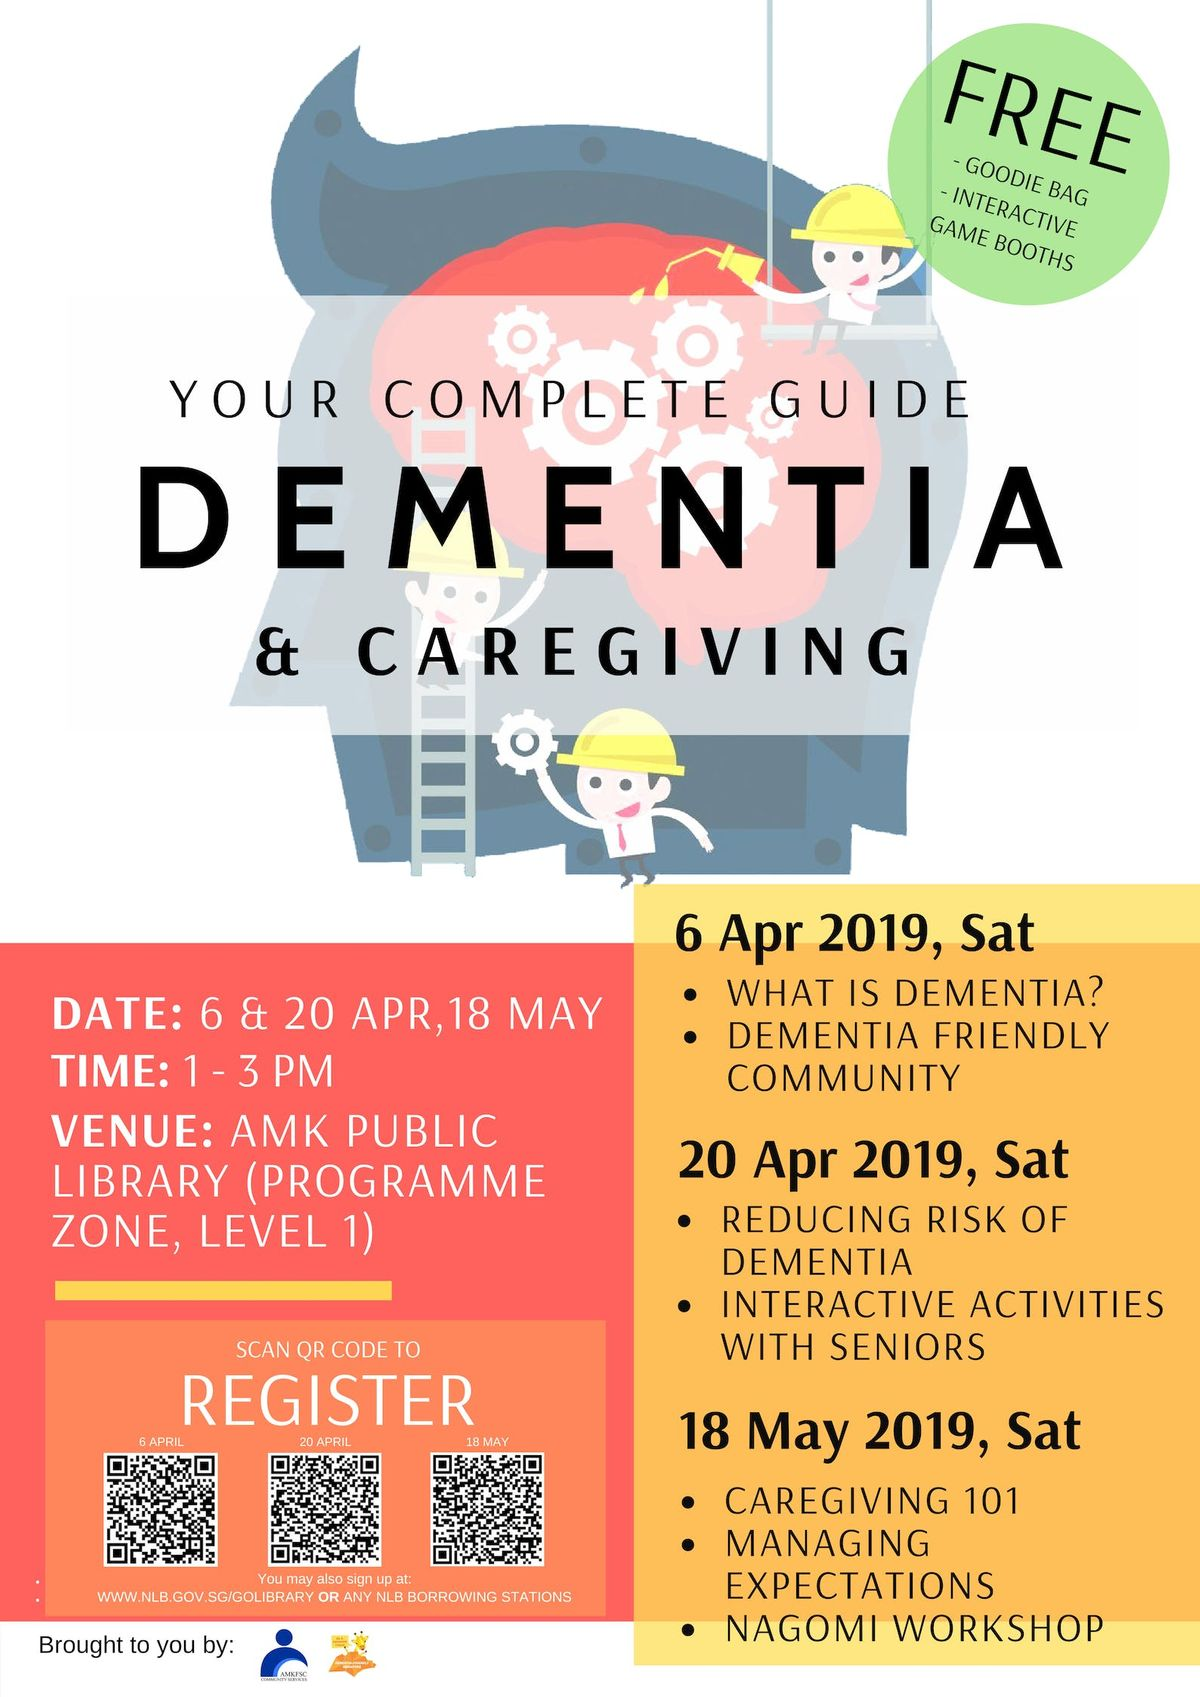 Reducing Risk of Dementia The COMPLETE GUIDE